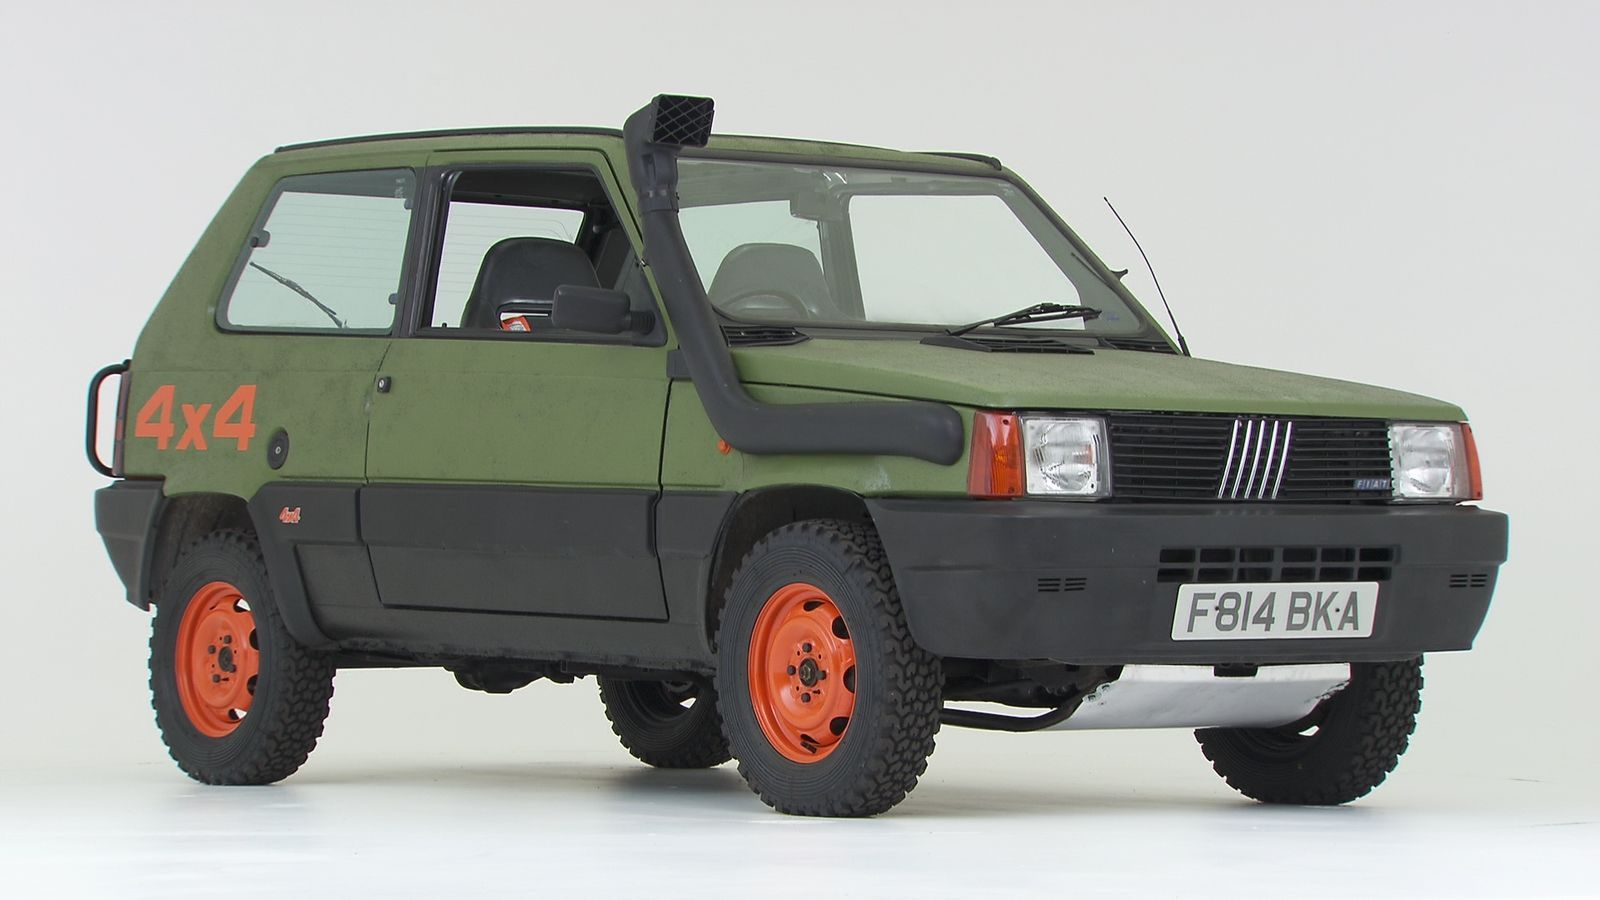 1989 Fiat Panda 4x4 To Be Featured On Wheeler Dealers Fiat Panda Wheeler Dealers Fiat